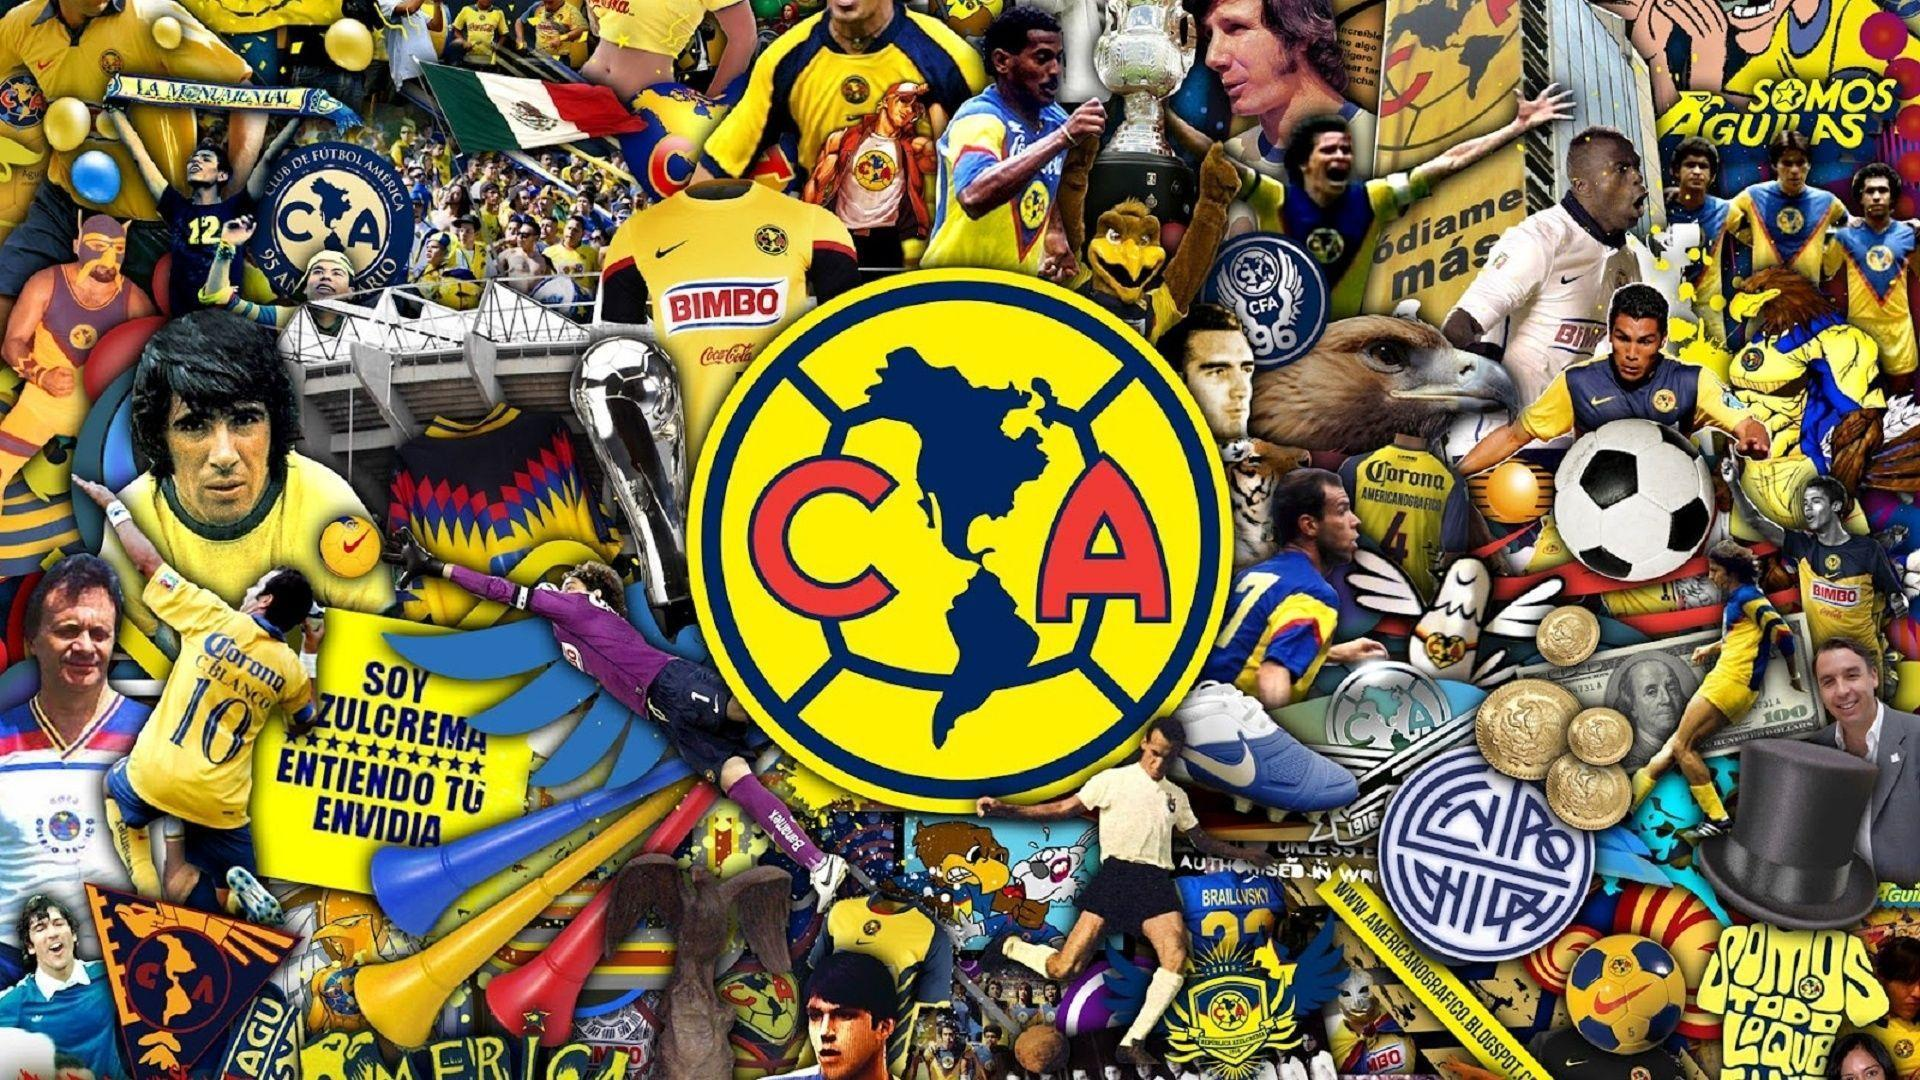 1920x1080 Football, Club America, Football Club America Wallpapers